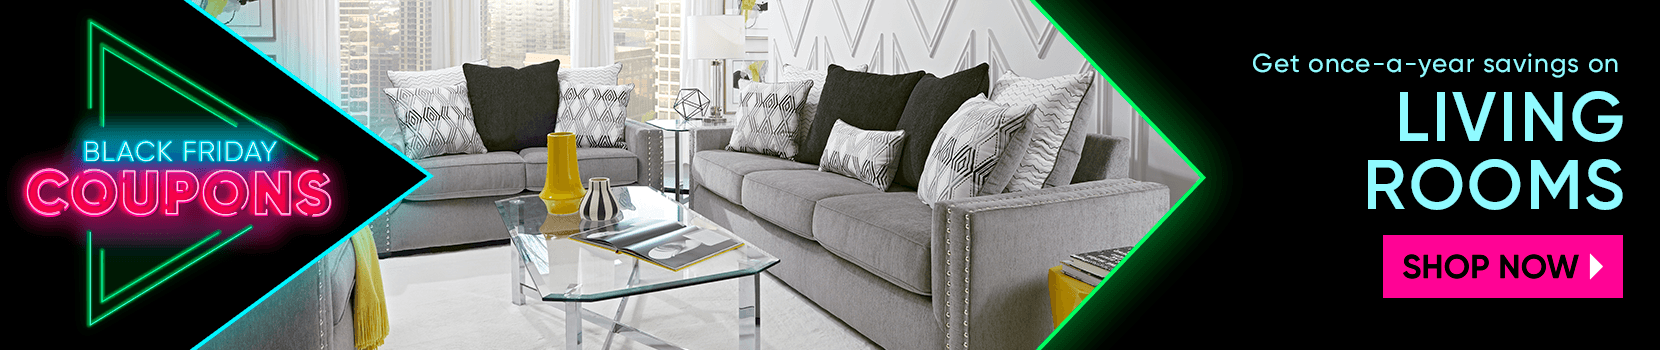 black friday coupons. get once a year savings on living rooms. shop now